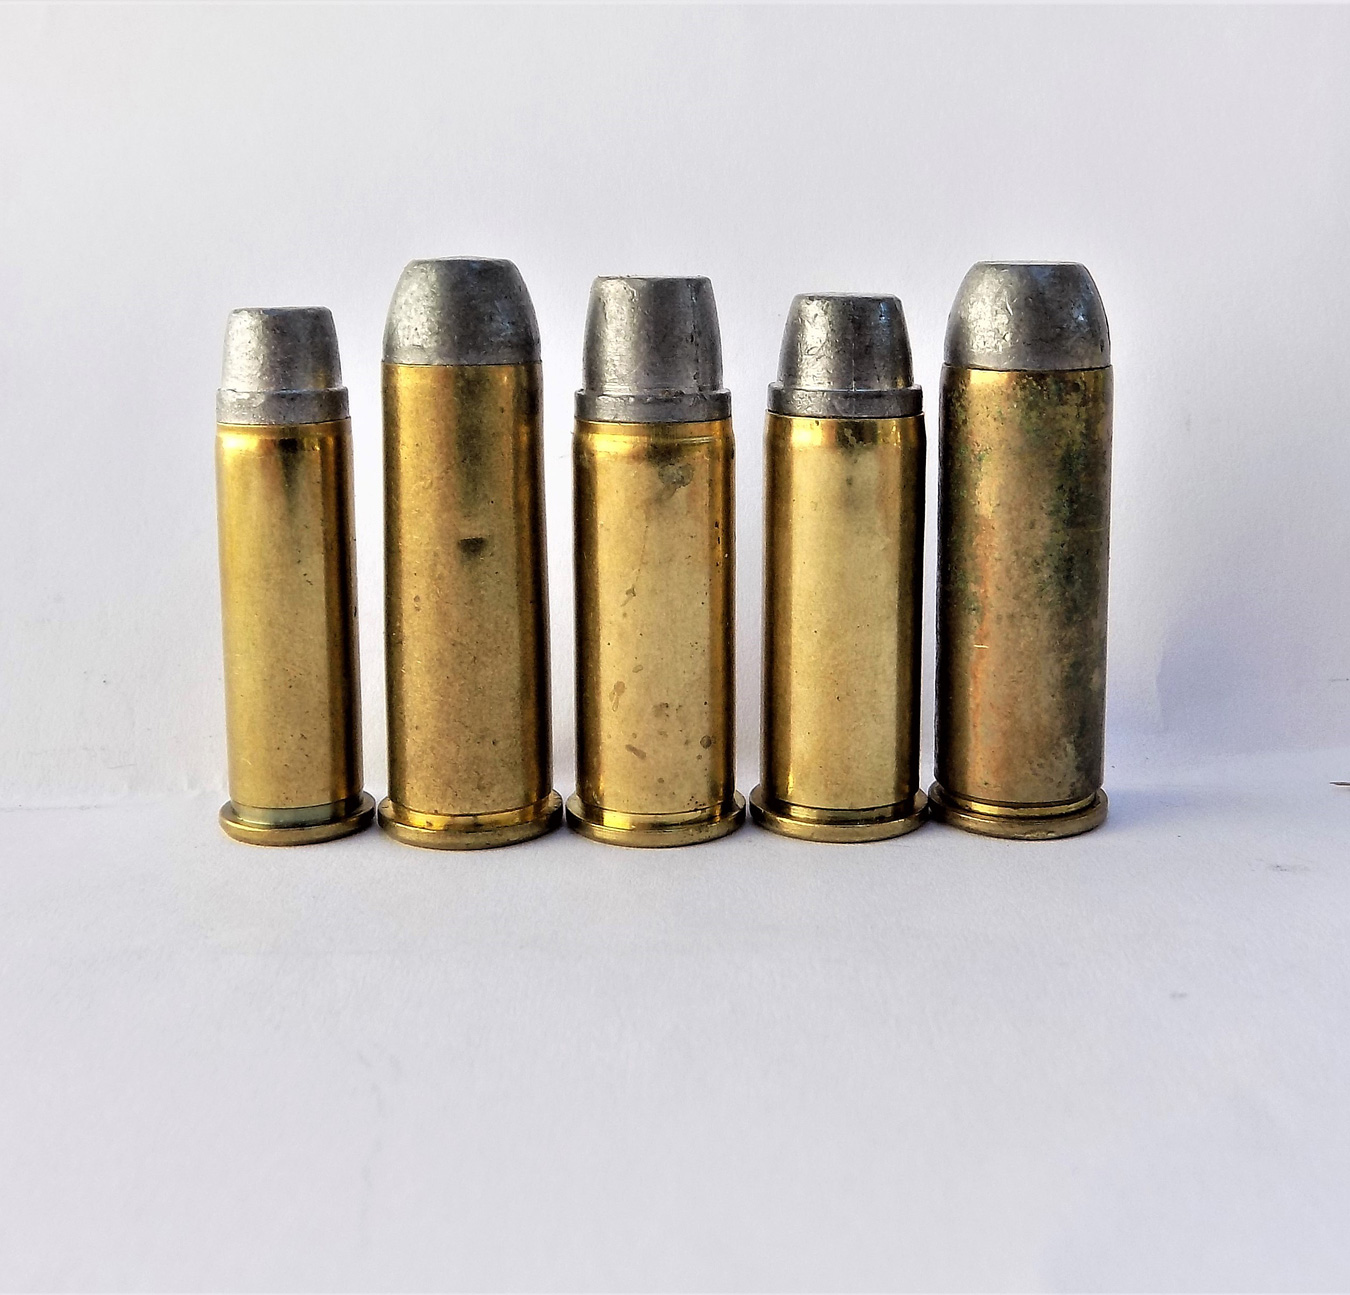 Five cowboy cartridges